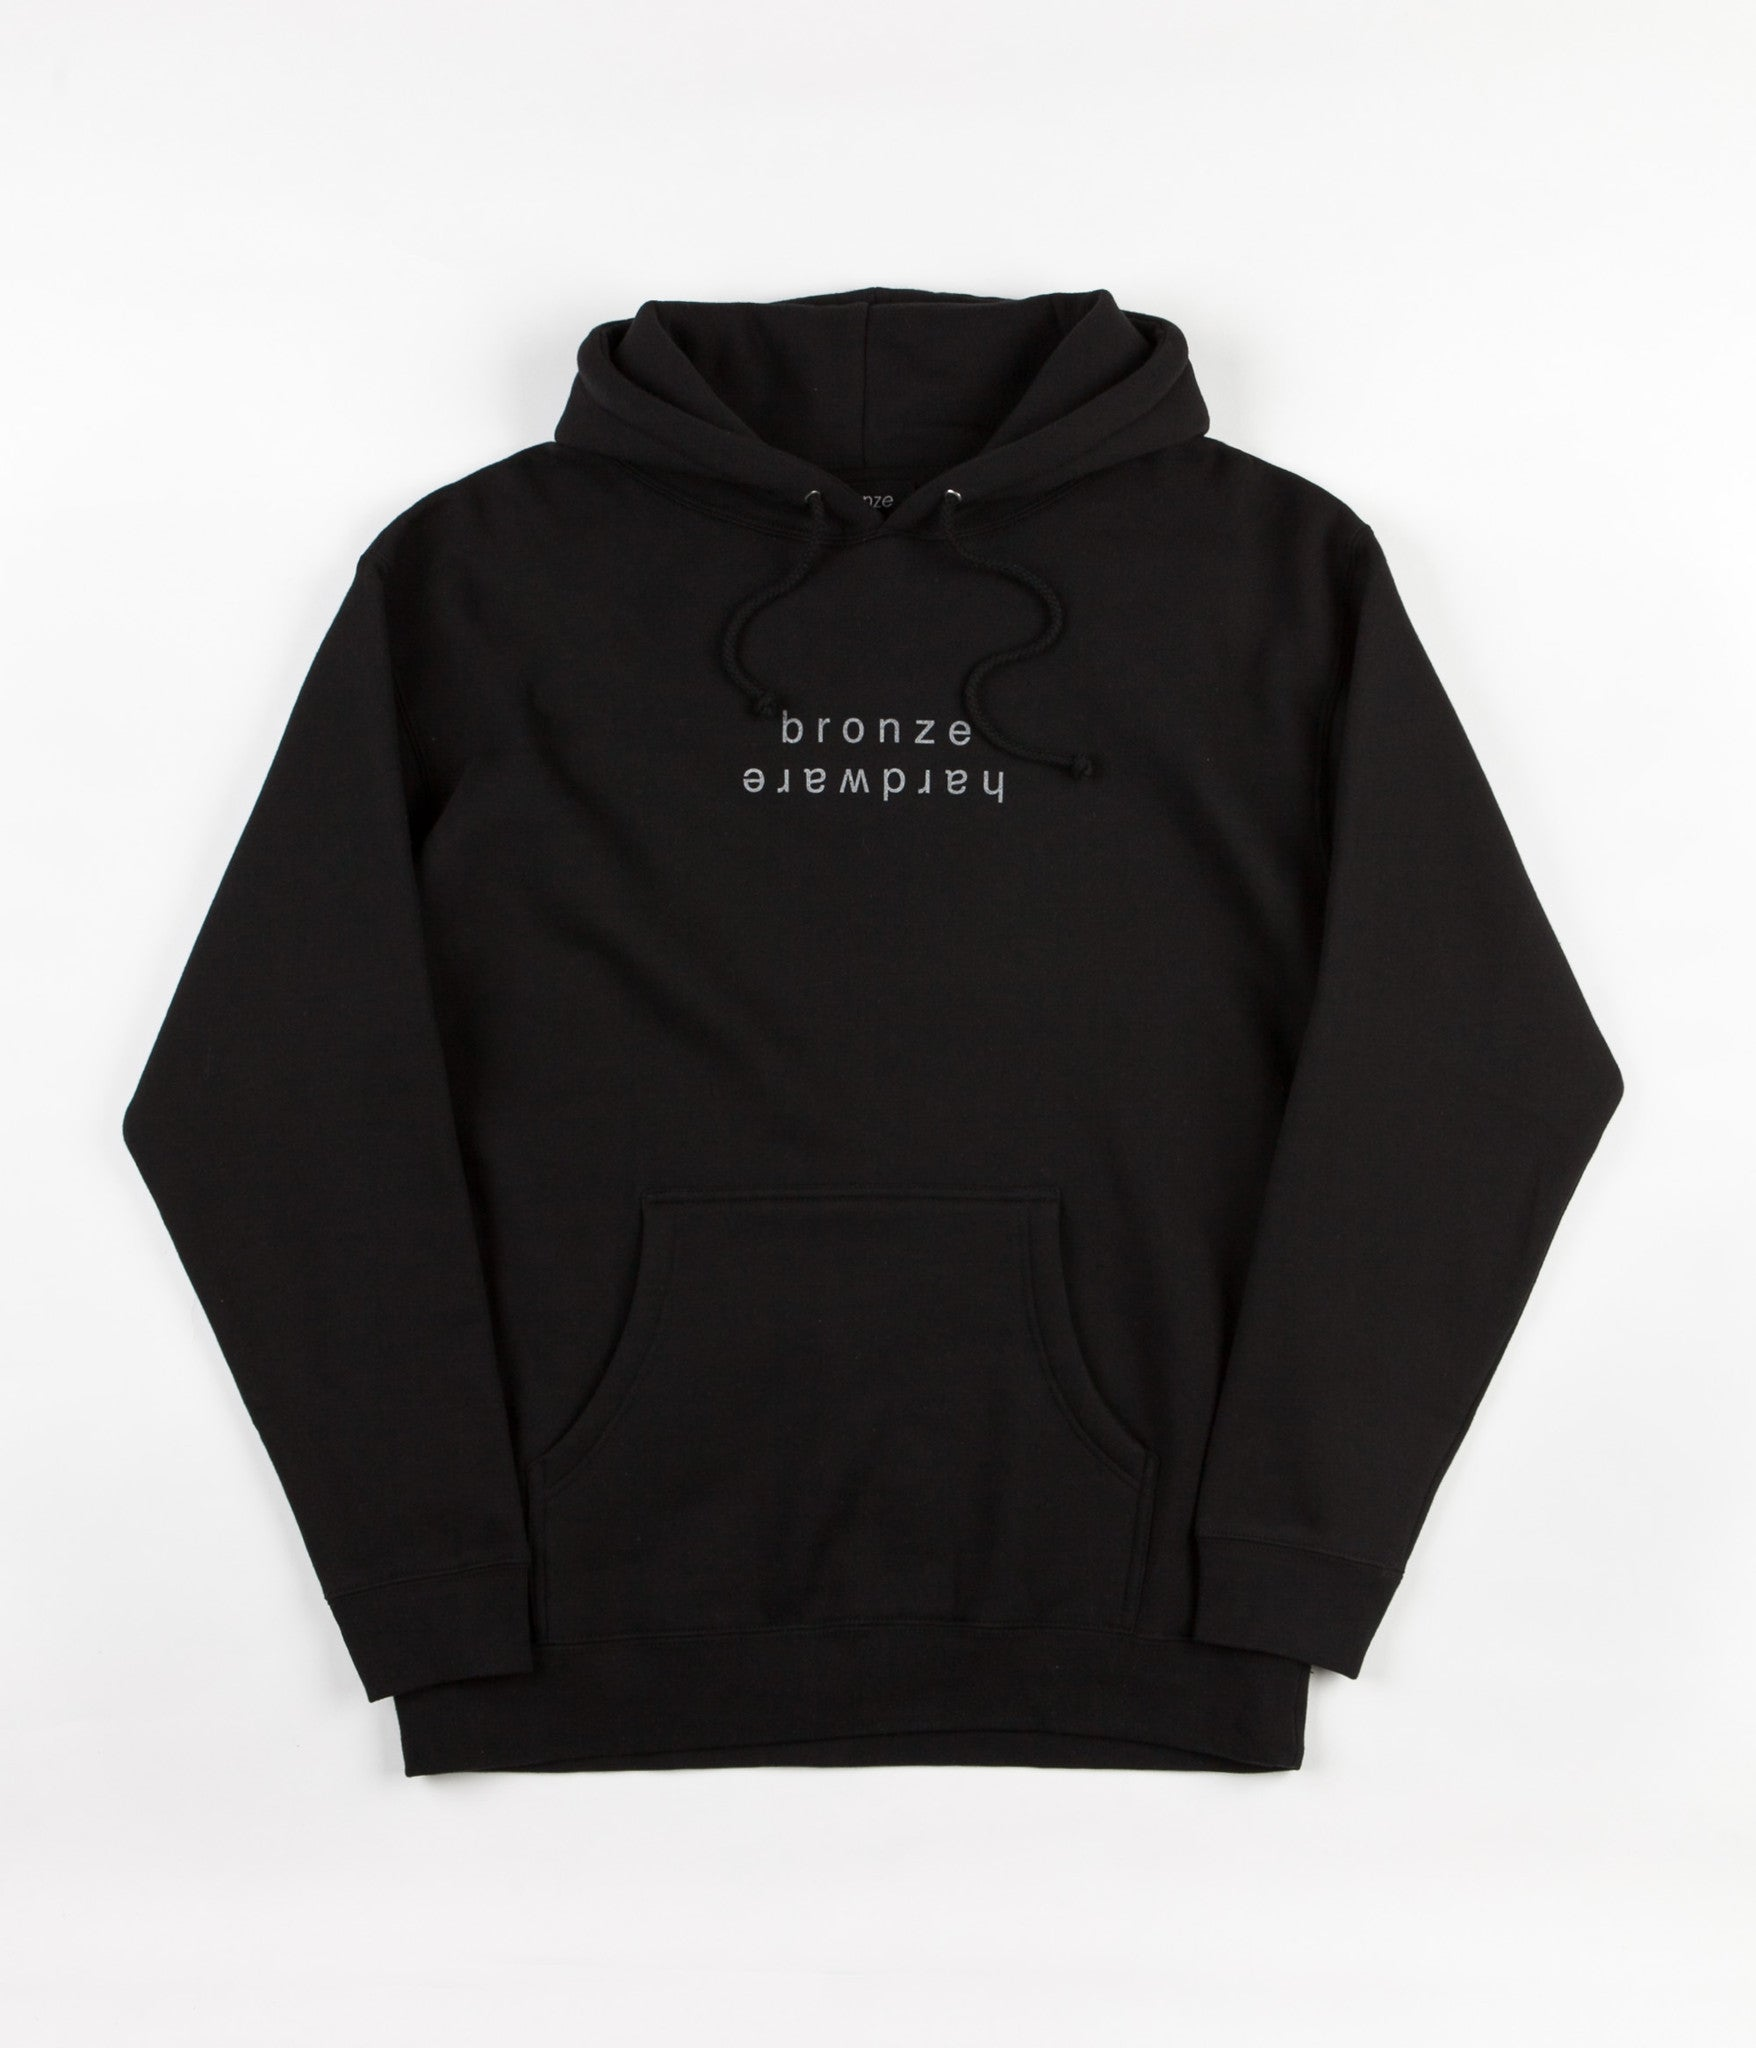 Bronze 56K Bronze Hardware Hooded Sweatshirt - Black